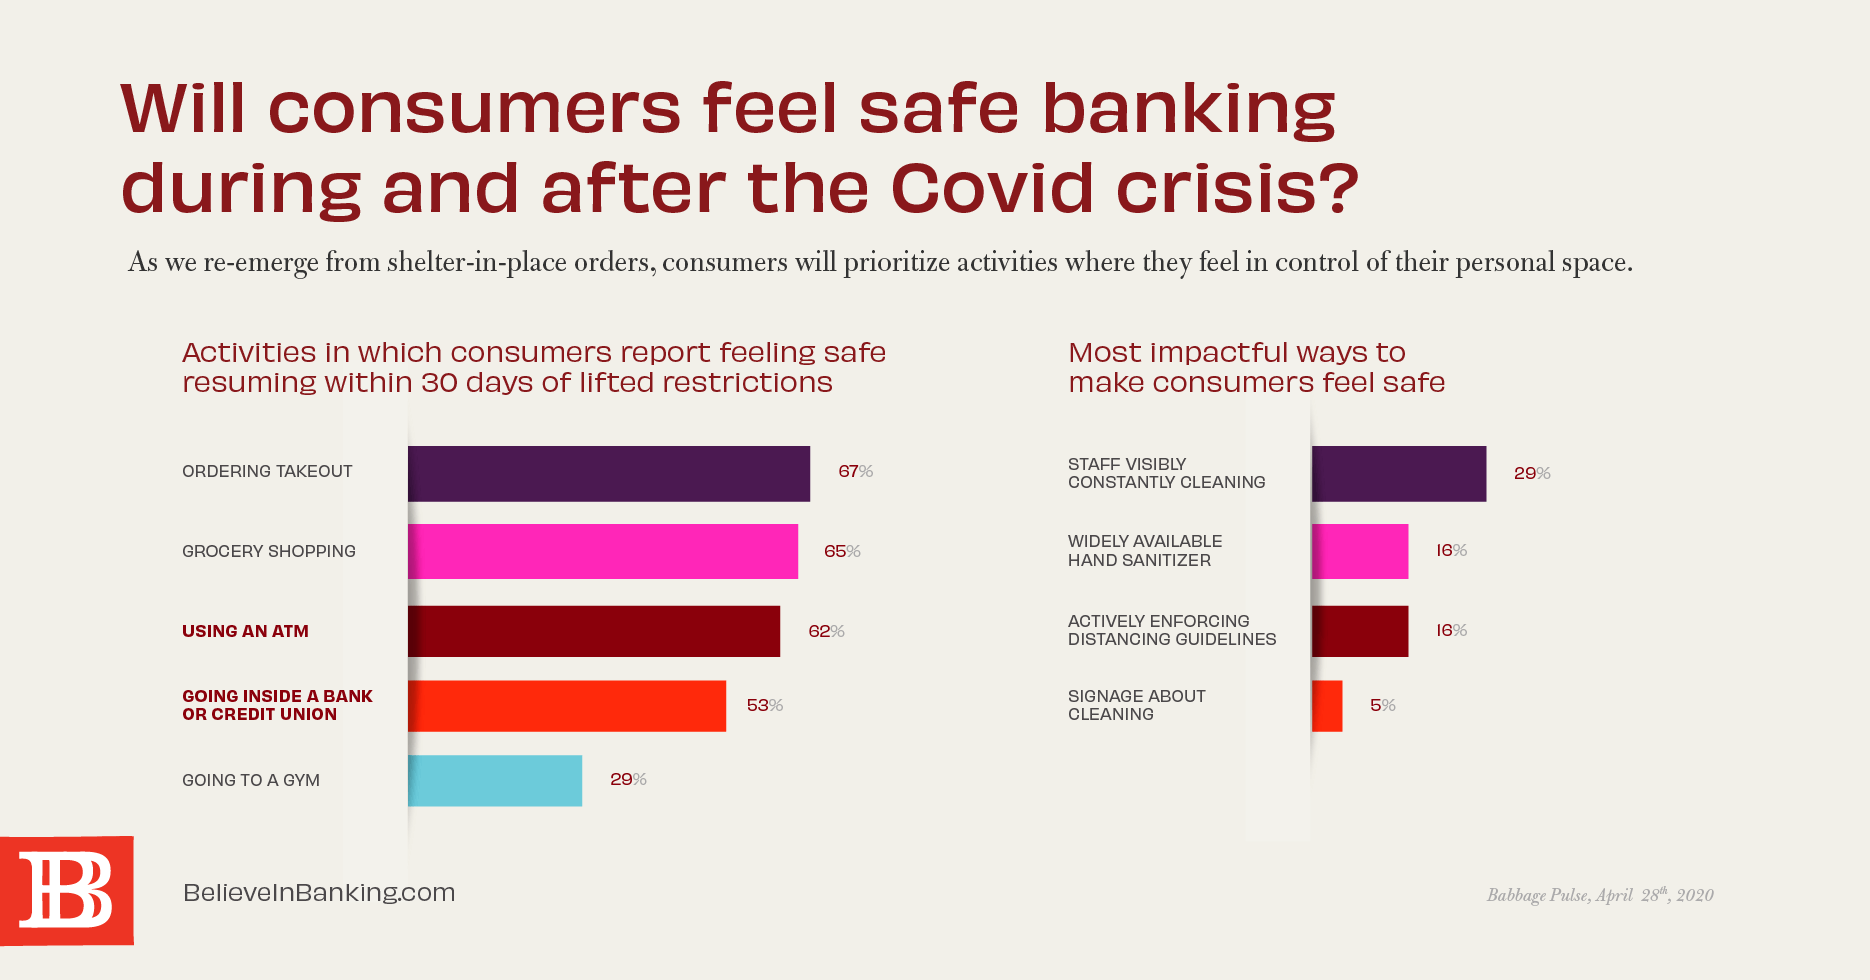 Statistics on consumers feeling safe banking after COVID